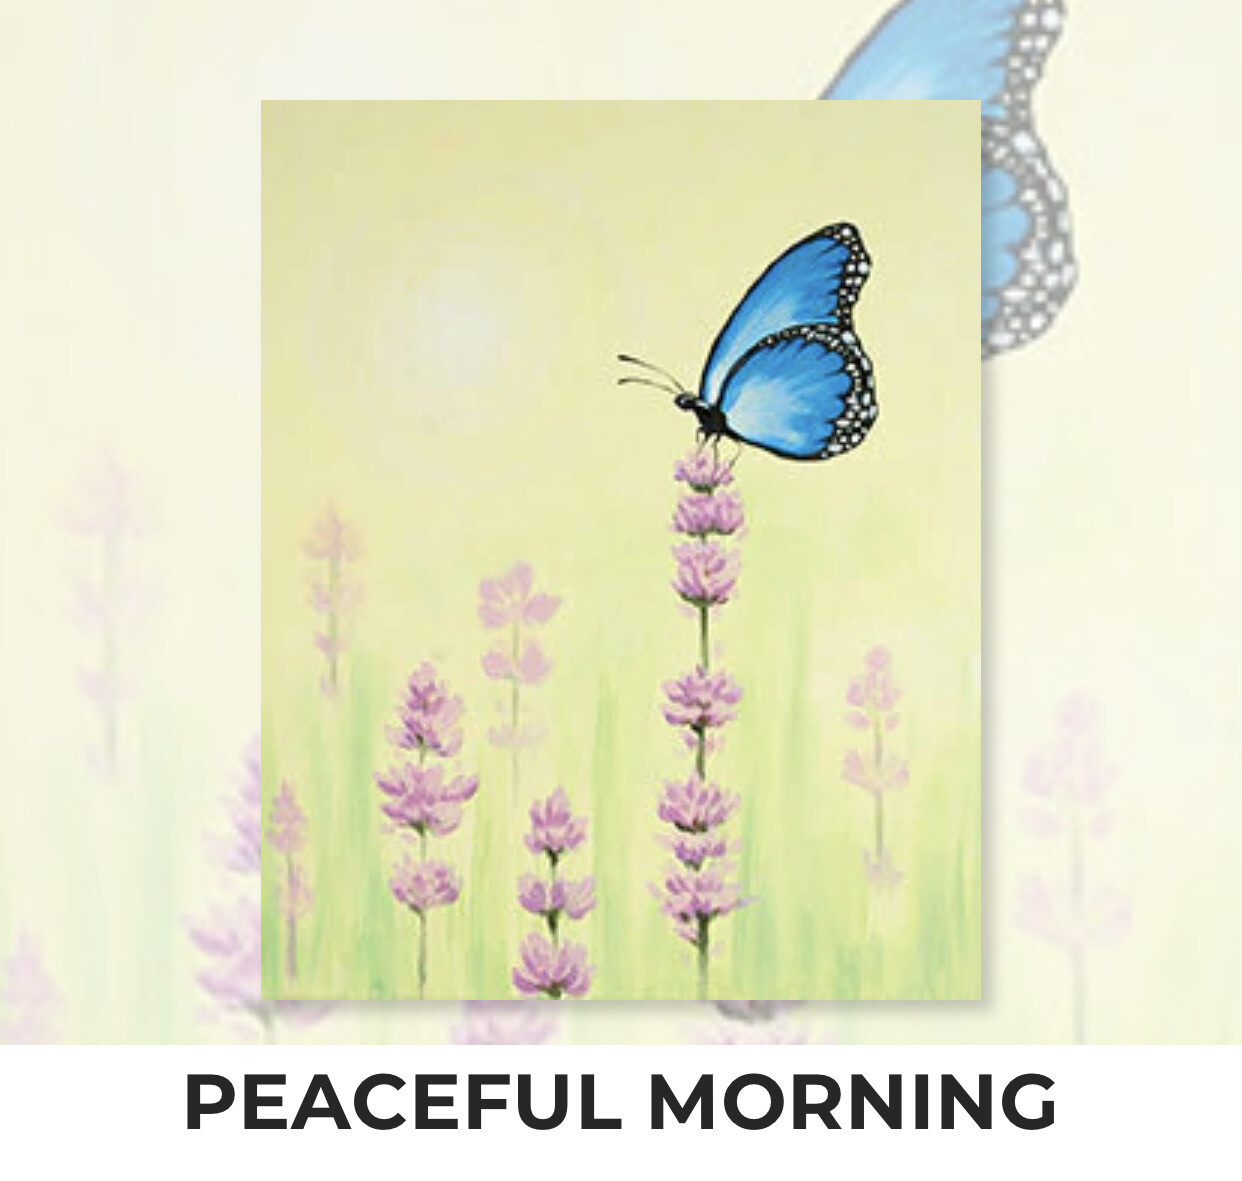 Peaceful Morning ADULT Acrylic Paint On Canvas DIY Art Kit - 3 Week Special Order